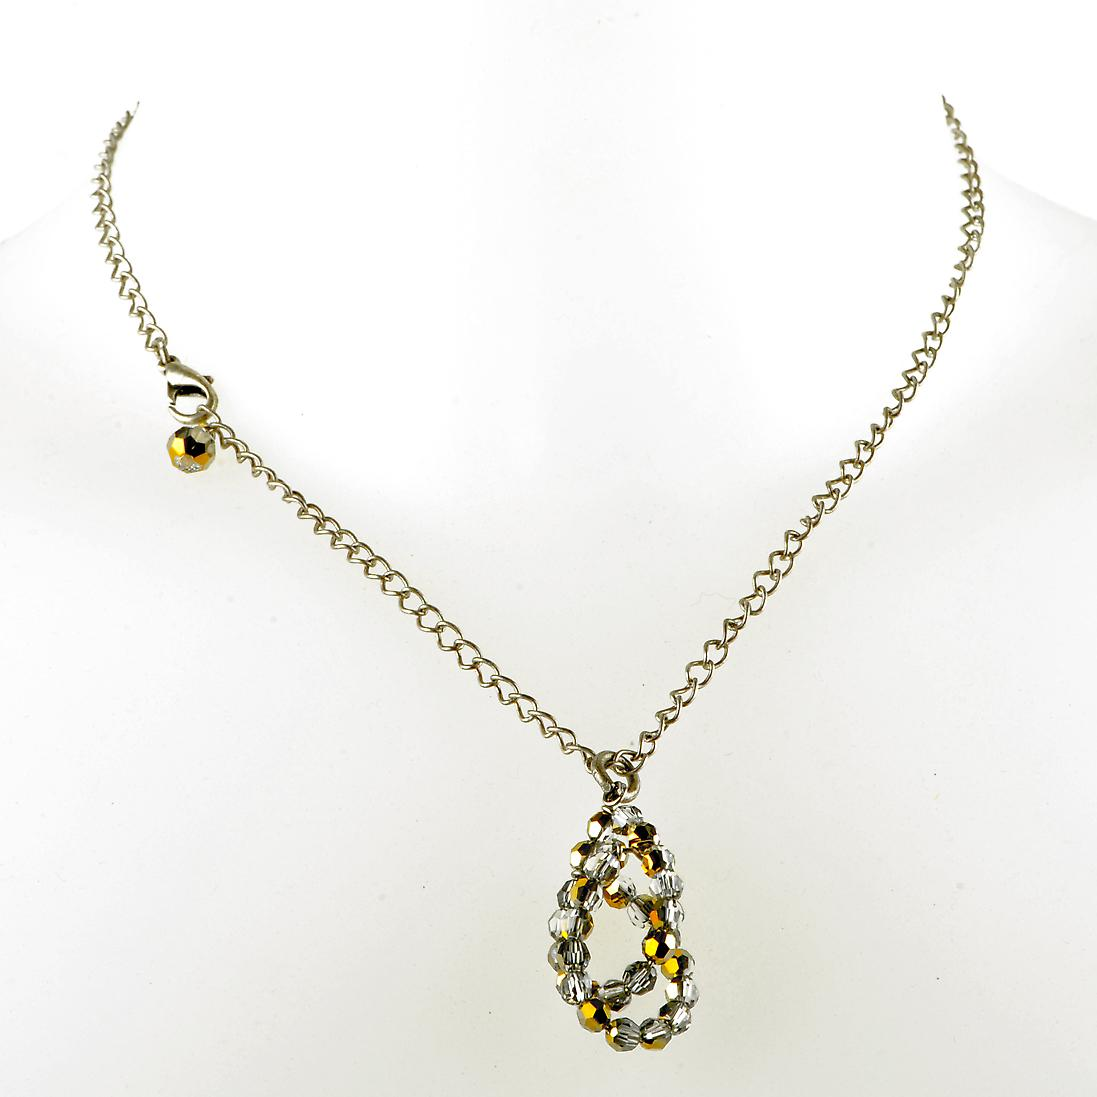 Waooh - jewelry - WJ0297 - necklace with silver Swarovski Crystal and gold - chain silver